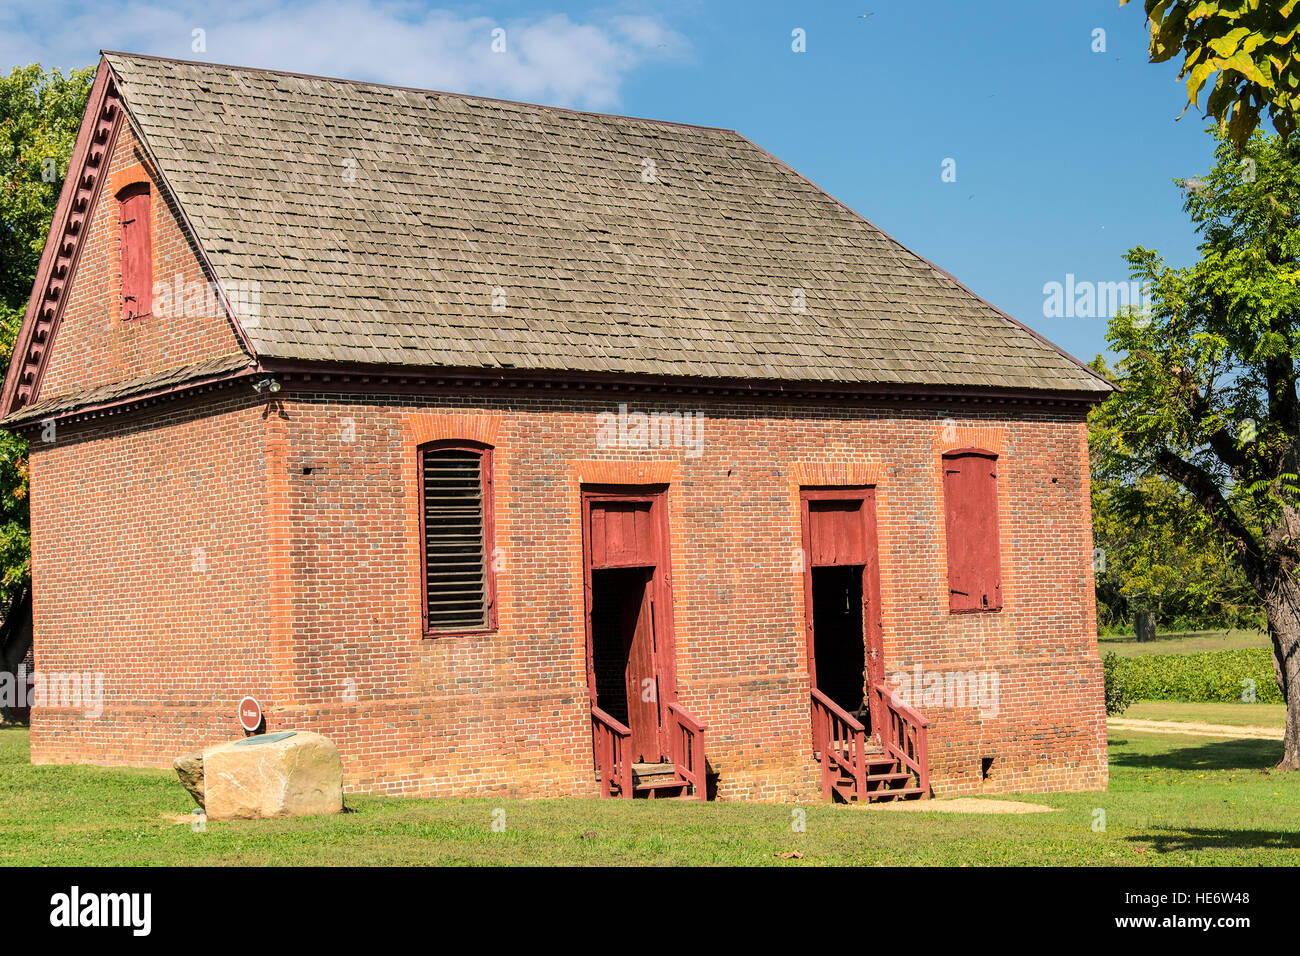 Shirley Plantation dependency building in the forecourt of the great house. - Stock Image